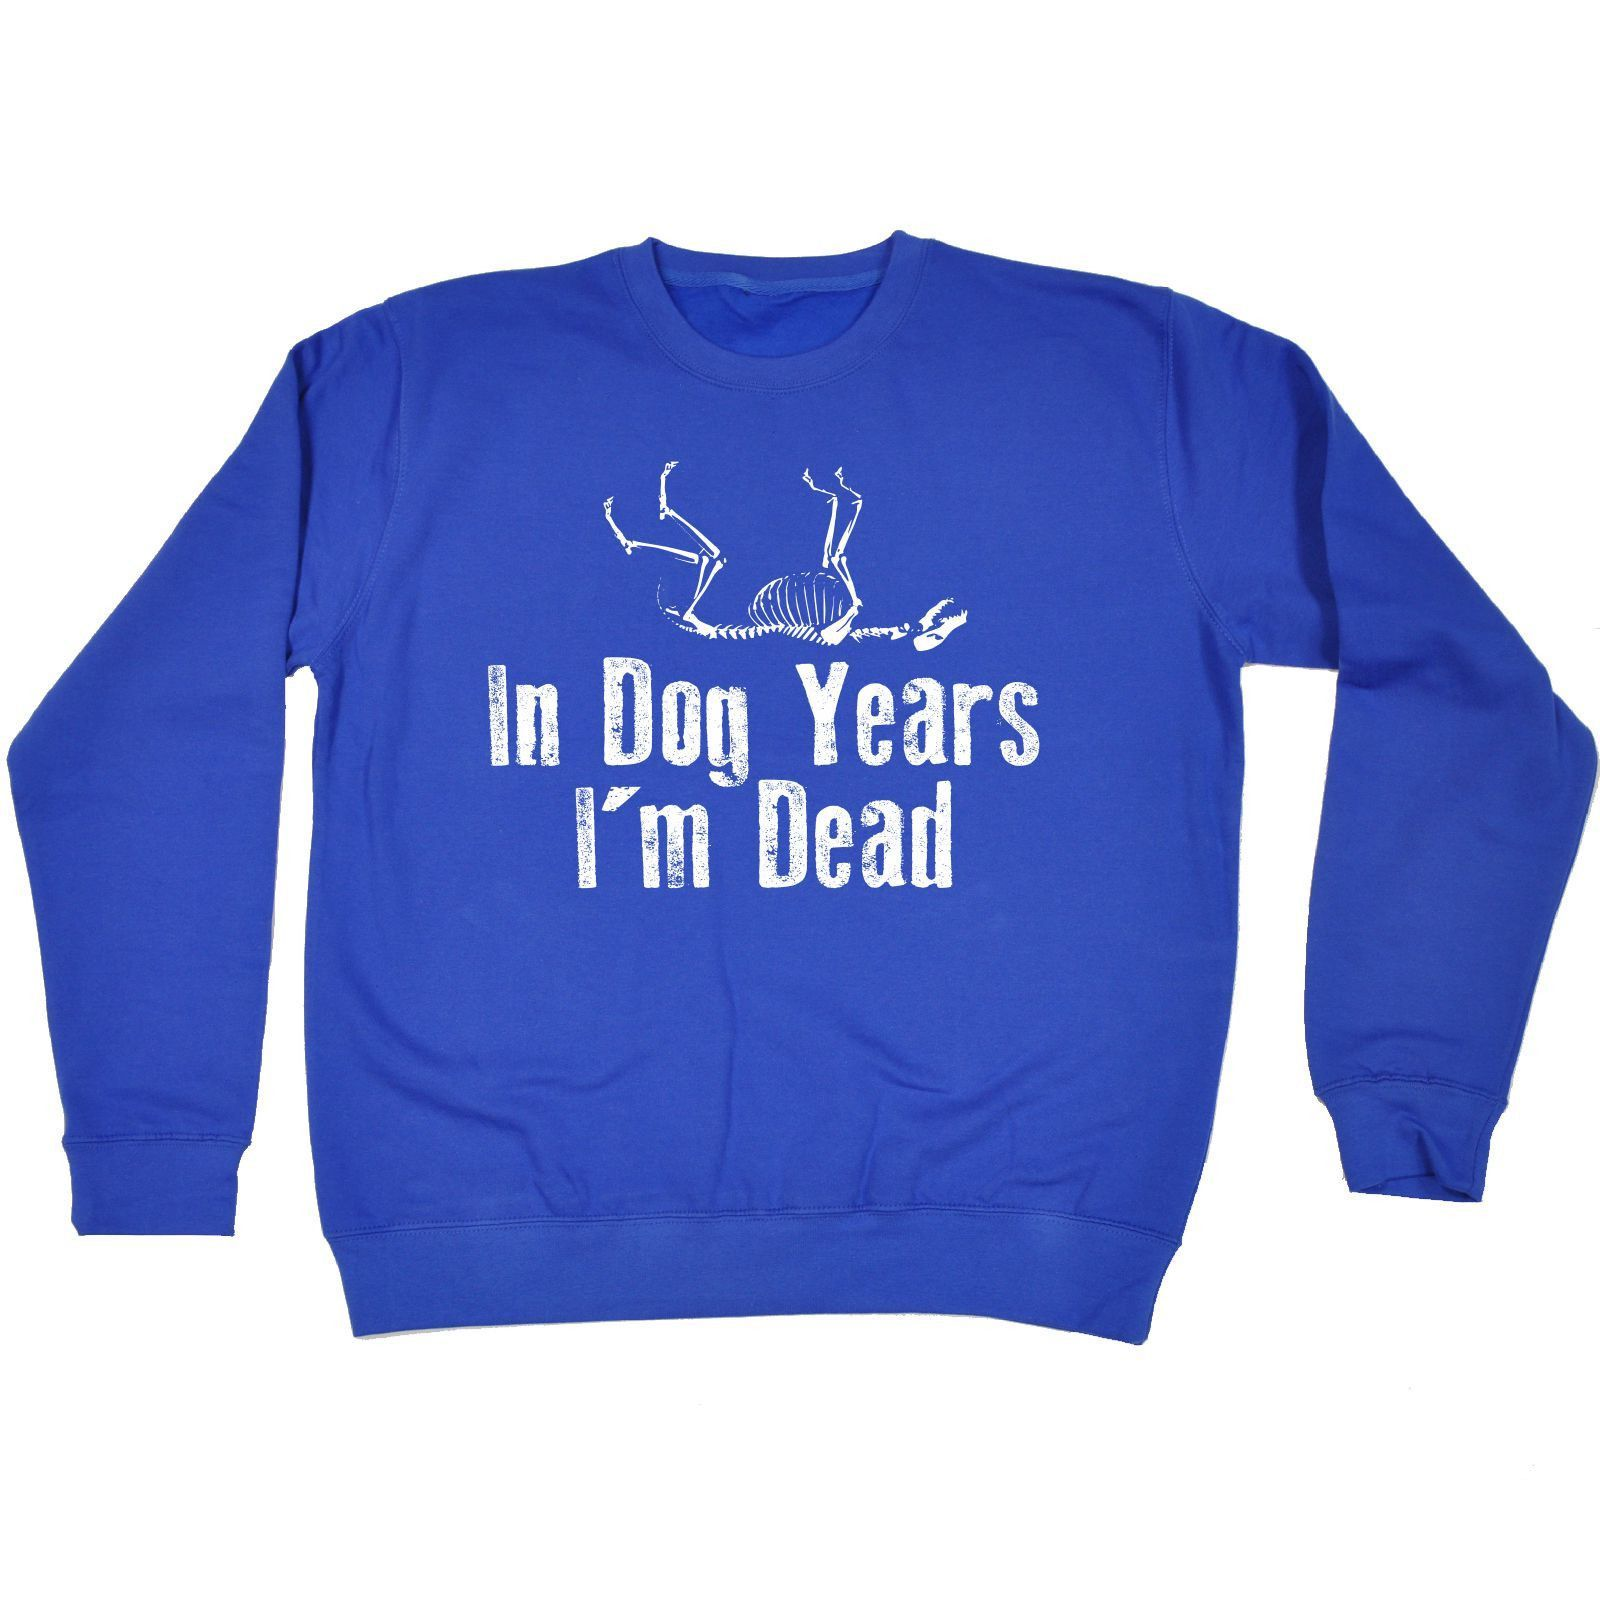 123t USA In Dog Years I'm Dead Funny Sweatshirt